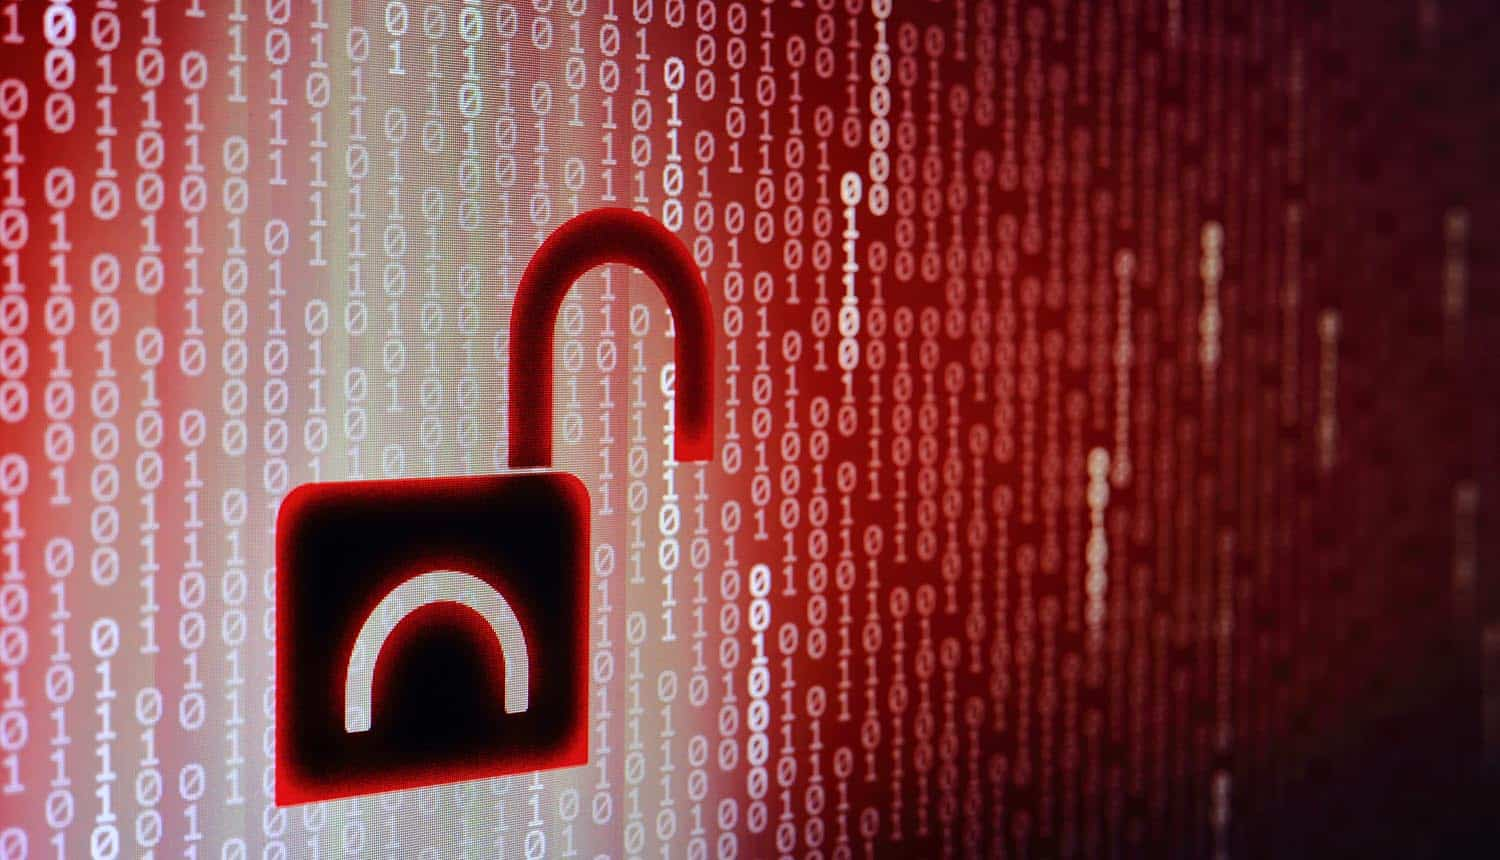 Red binary code background with open black padlock icon showing password leak